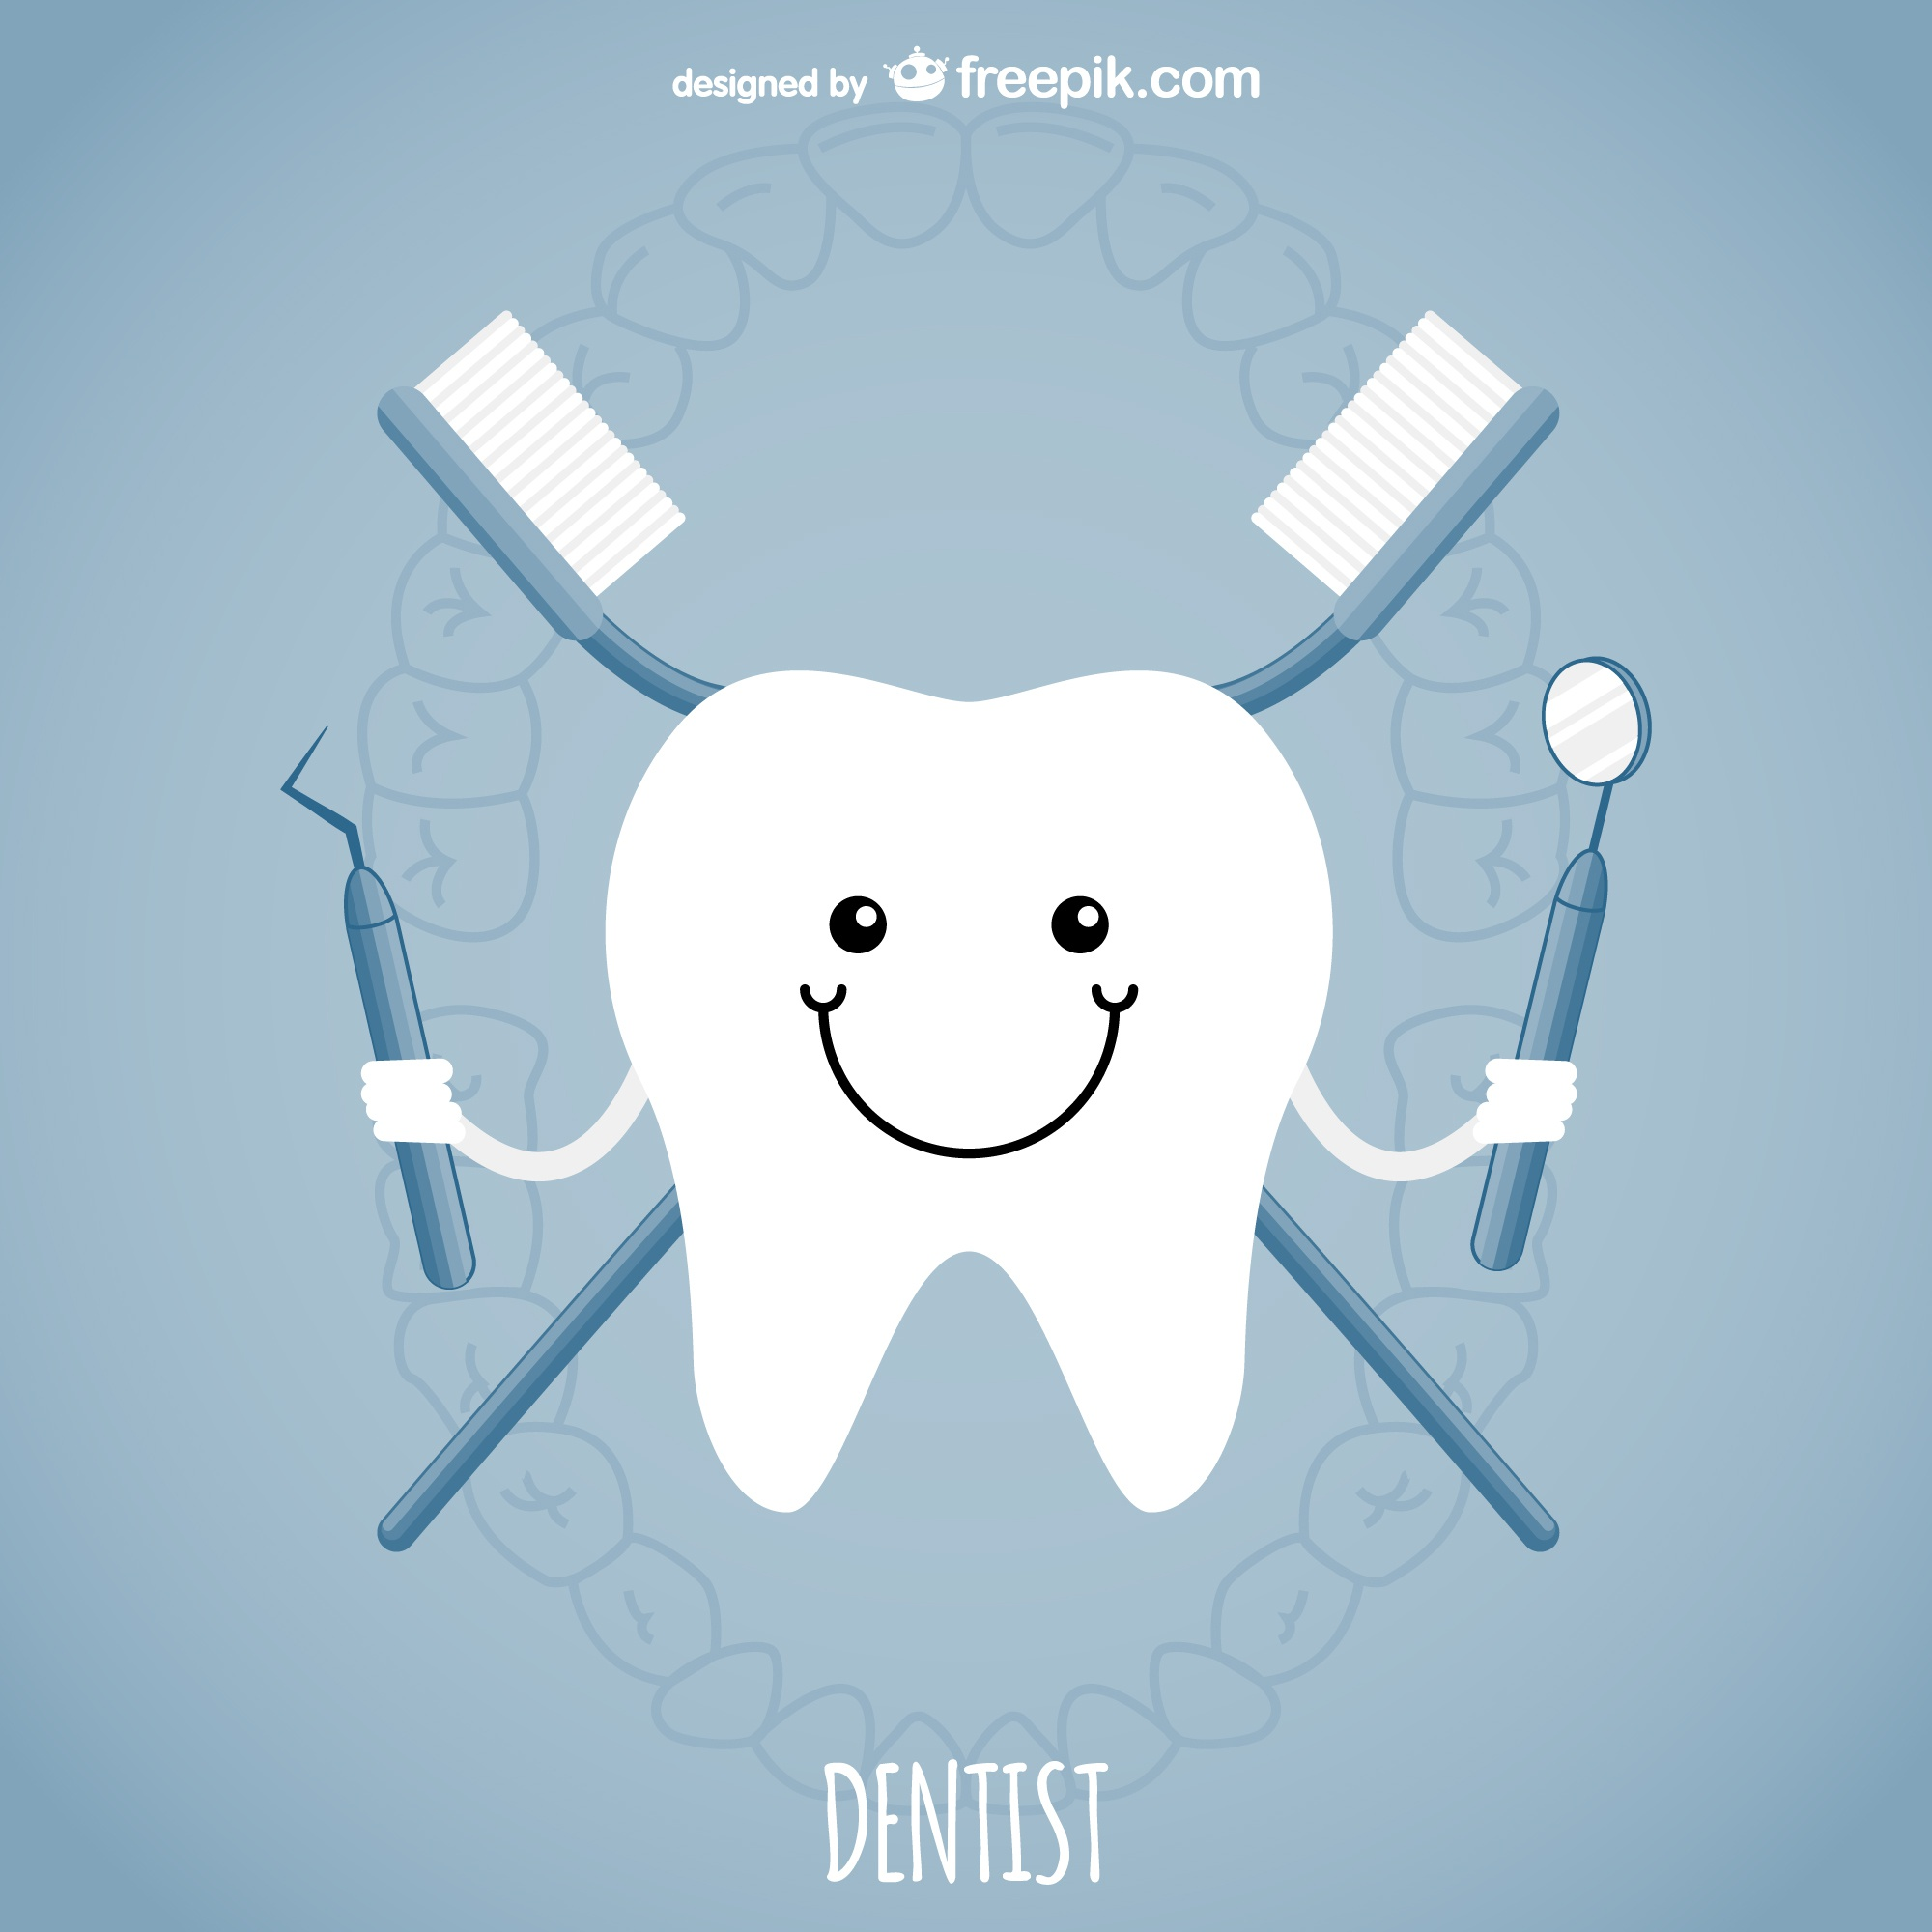 Dentist concept vector